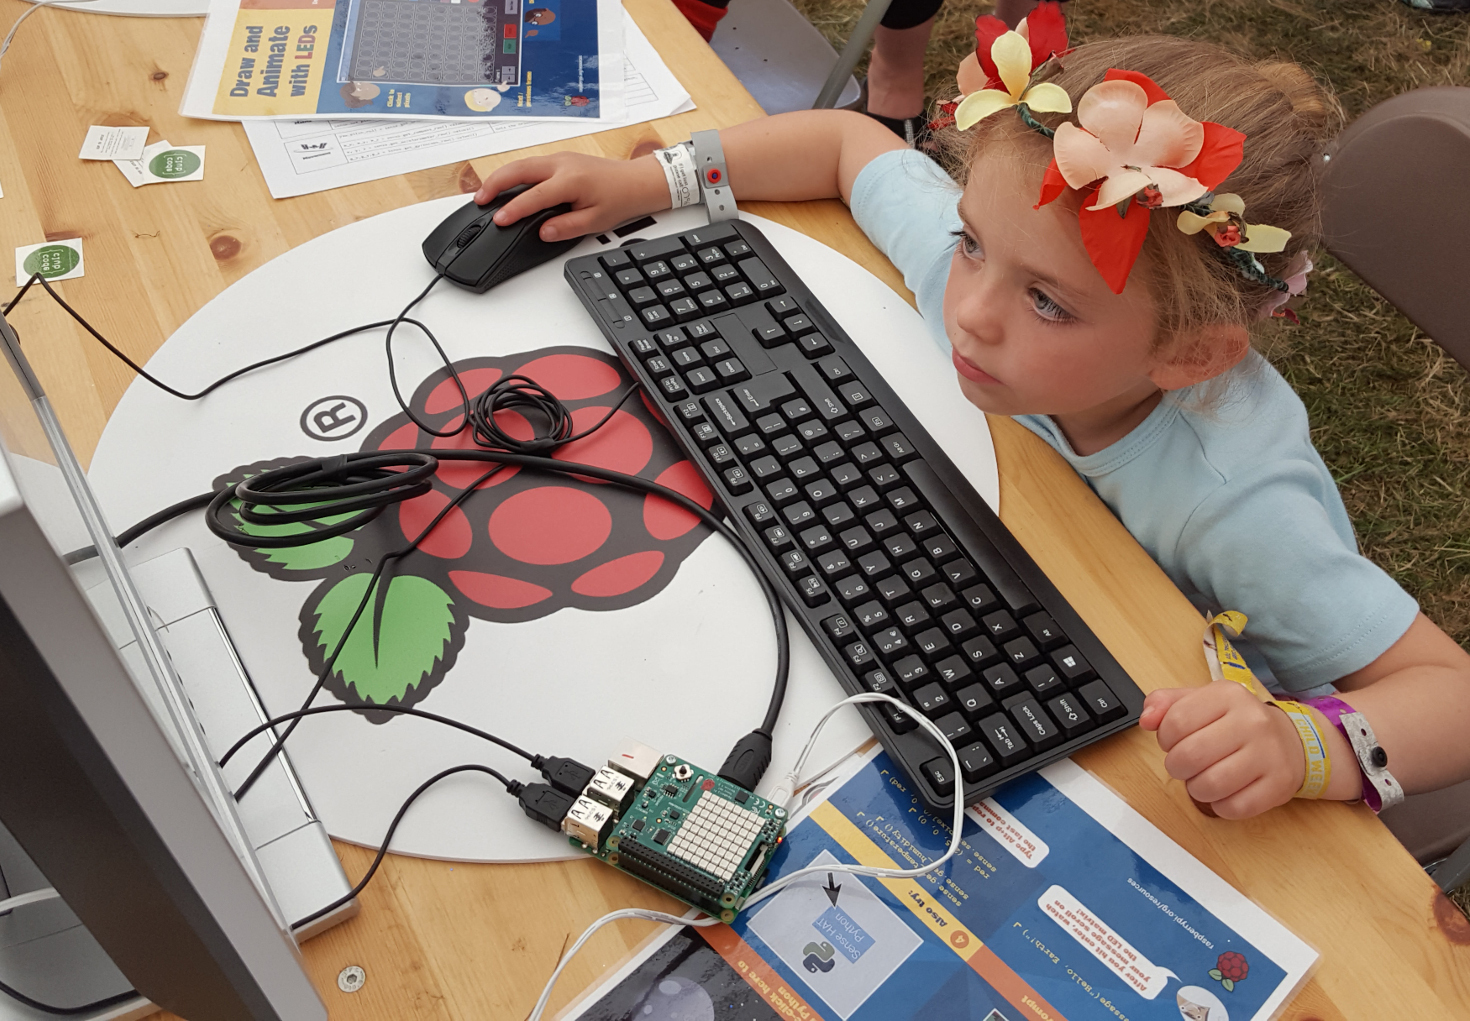 Raspberry Pi at Camp Bestival